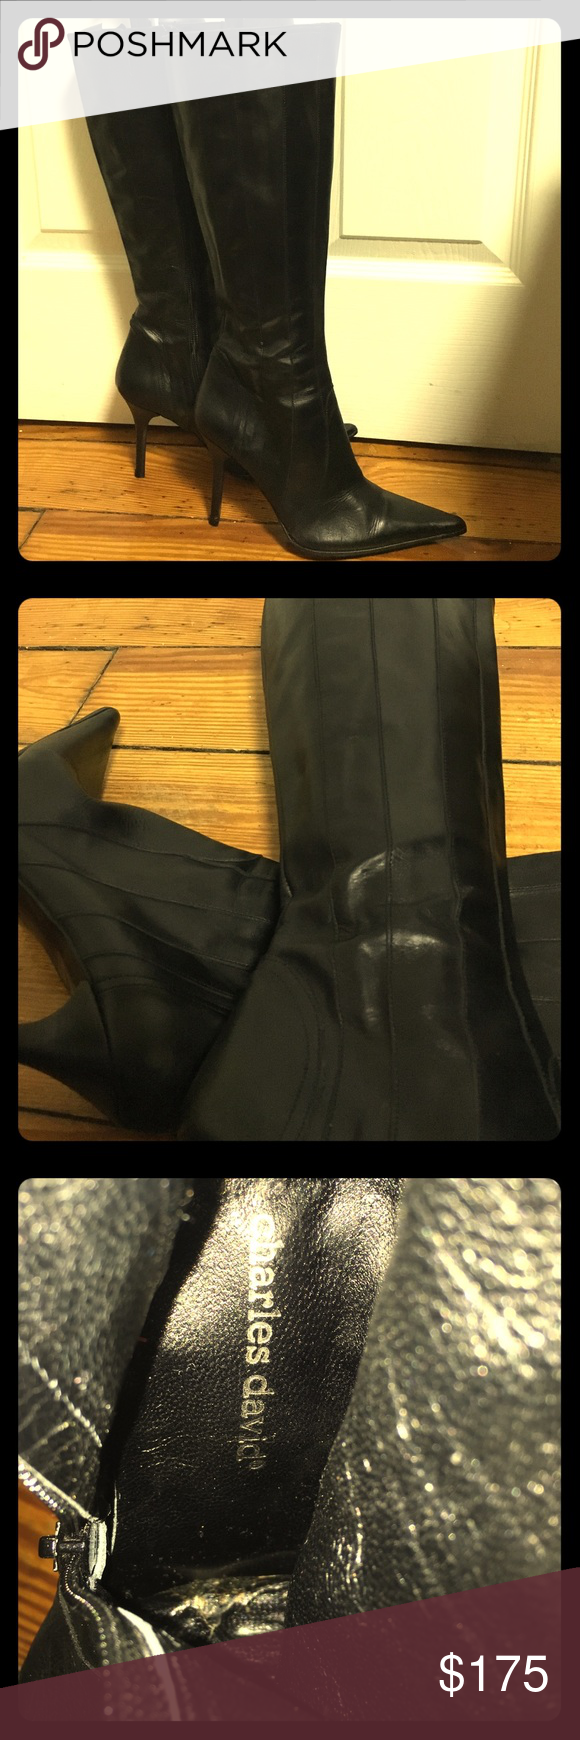 Charles David leather high heel boots -black Charles David leather high heel boots -black. These boots are in excellent condition. All leather, leather lining, 4 inch heel. Super fun detail design. New heels and new vibram soles. Please refer to pictures for more information. Charles David Shoes Heeled Boots